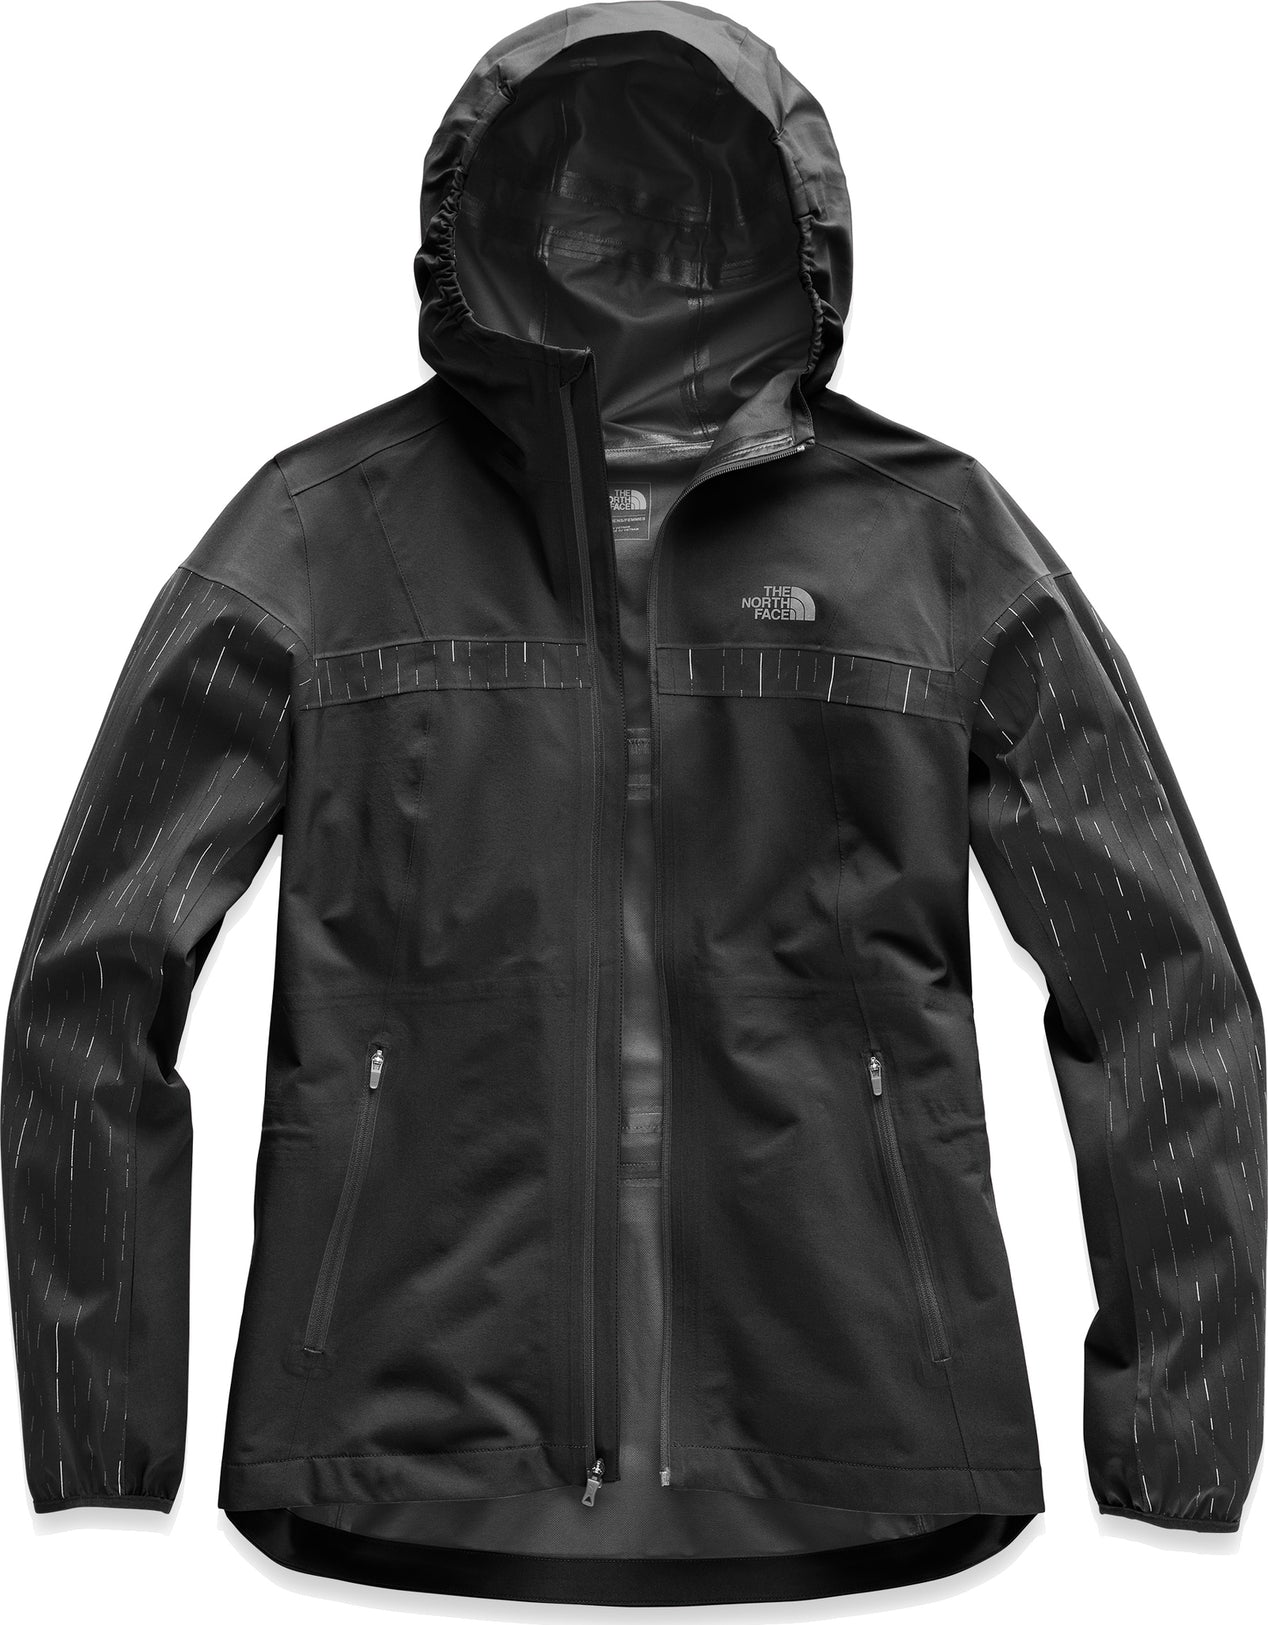 78b257530 The North Face Ambition Rain Jacket - Women's